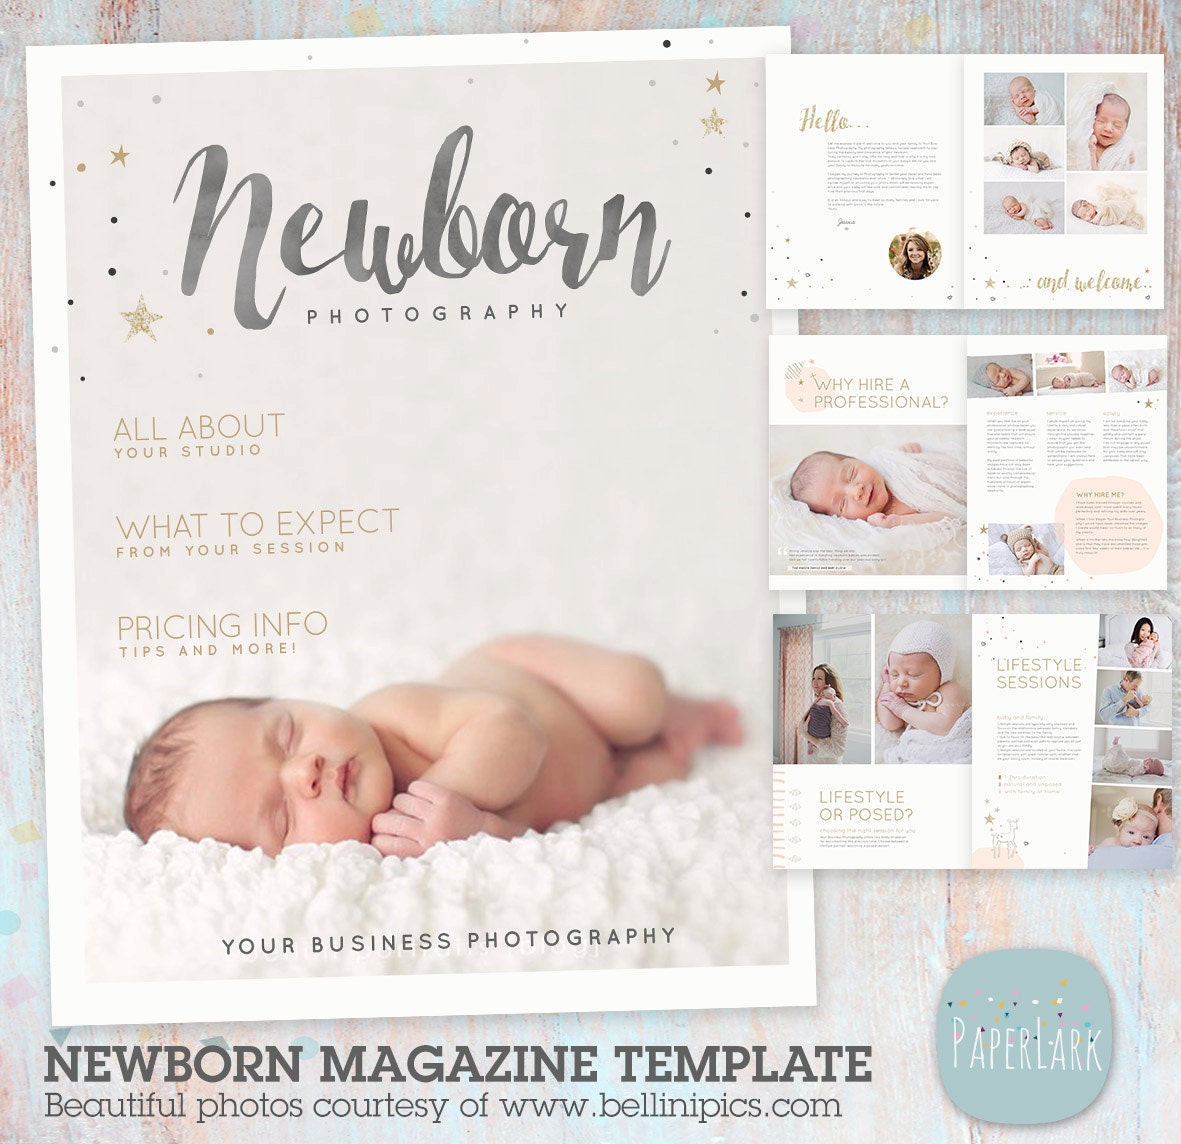 Newborn Photography Magazine Template 22 Pages PG016   Etsy